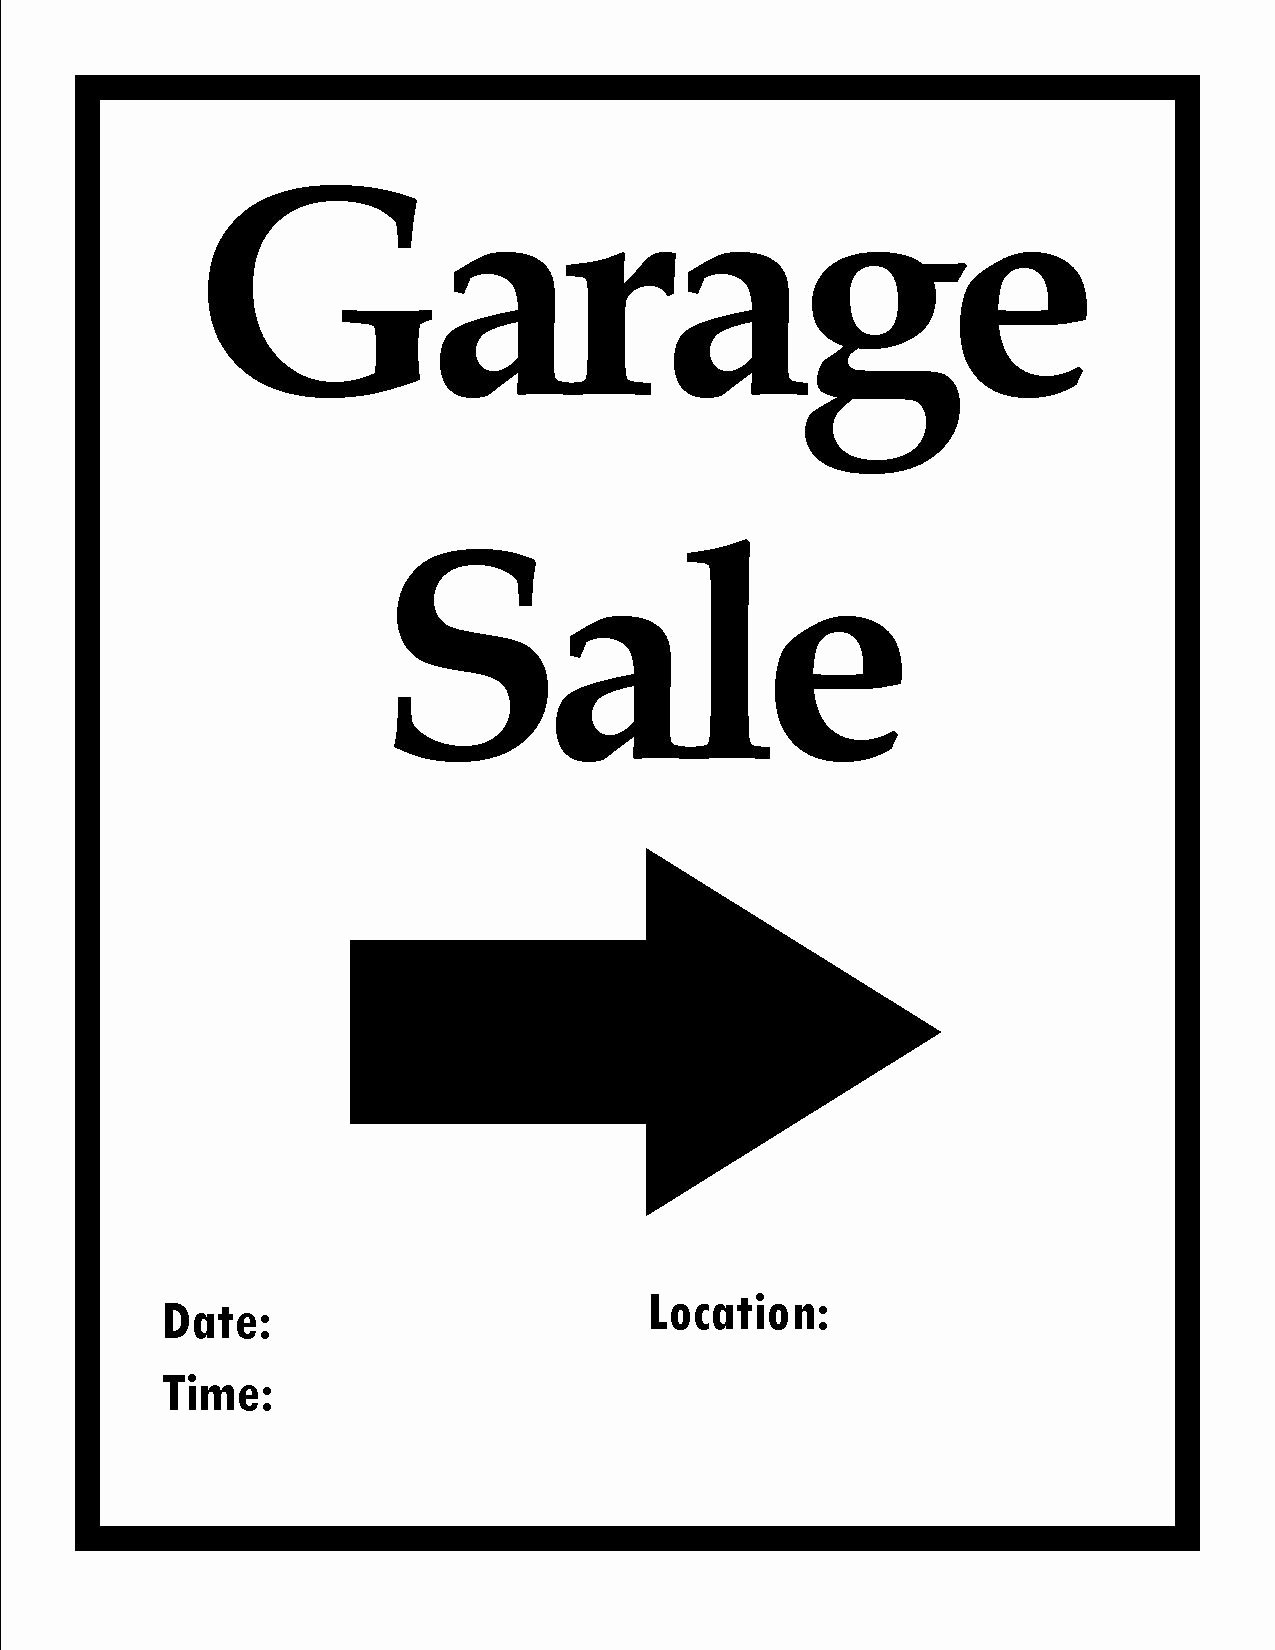 Garage Sale Sign Template Elegant Printable Items to organize Your Next Move